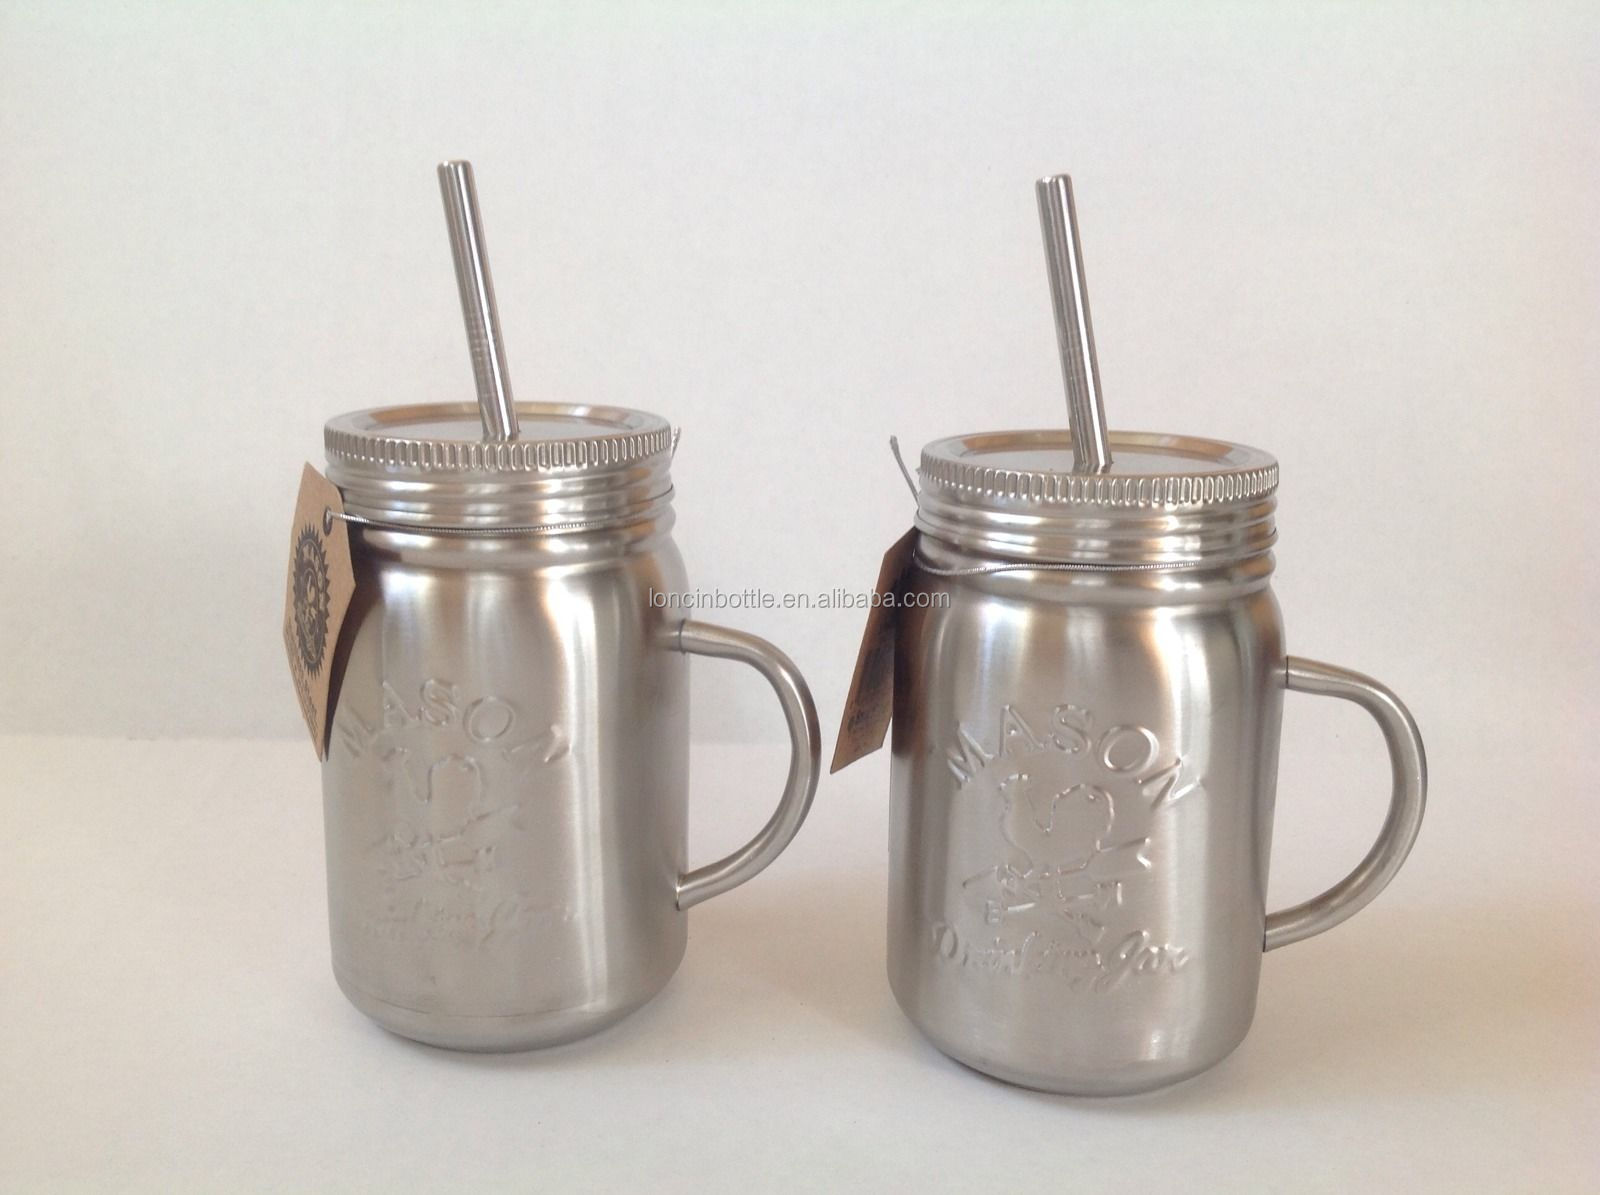 Mason Drinking Jar With Handle Amp Straw Stainless Steel